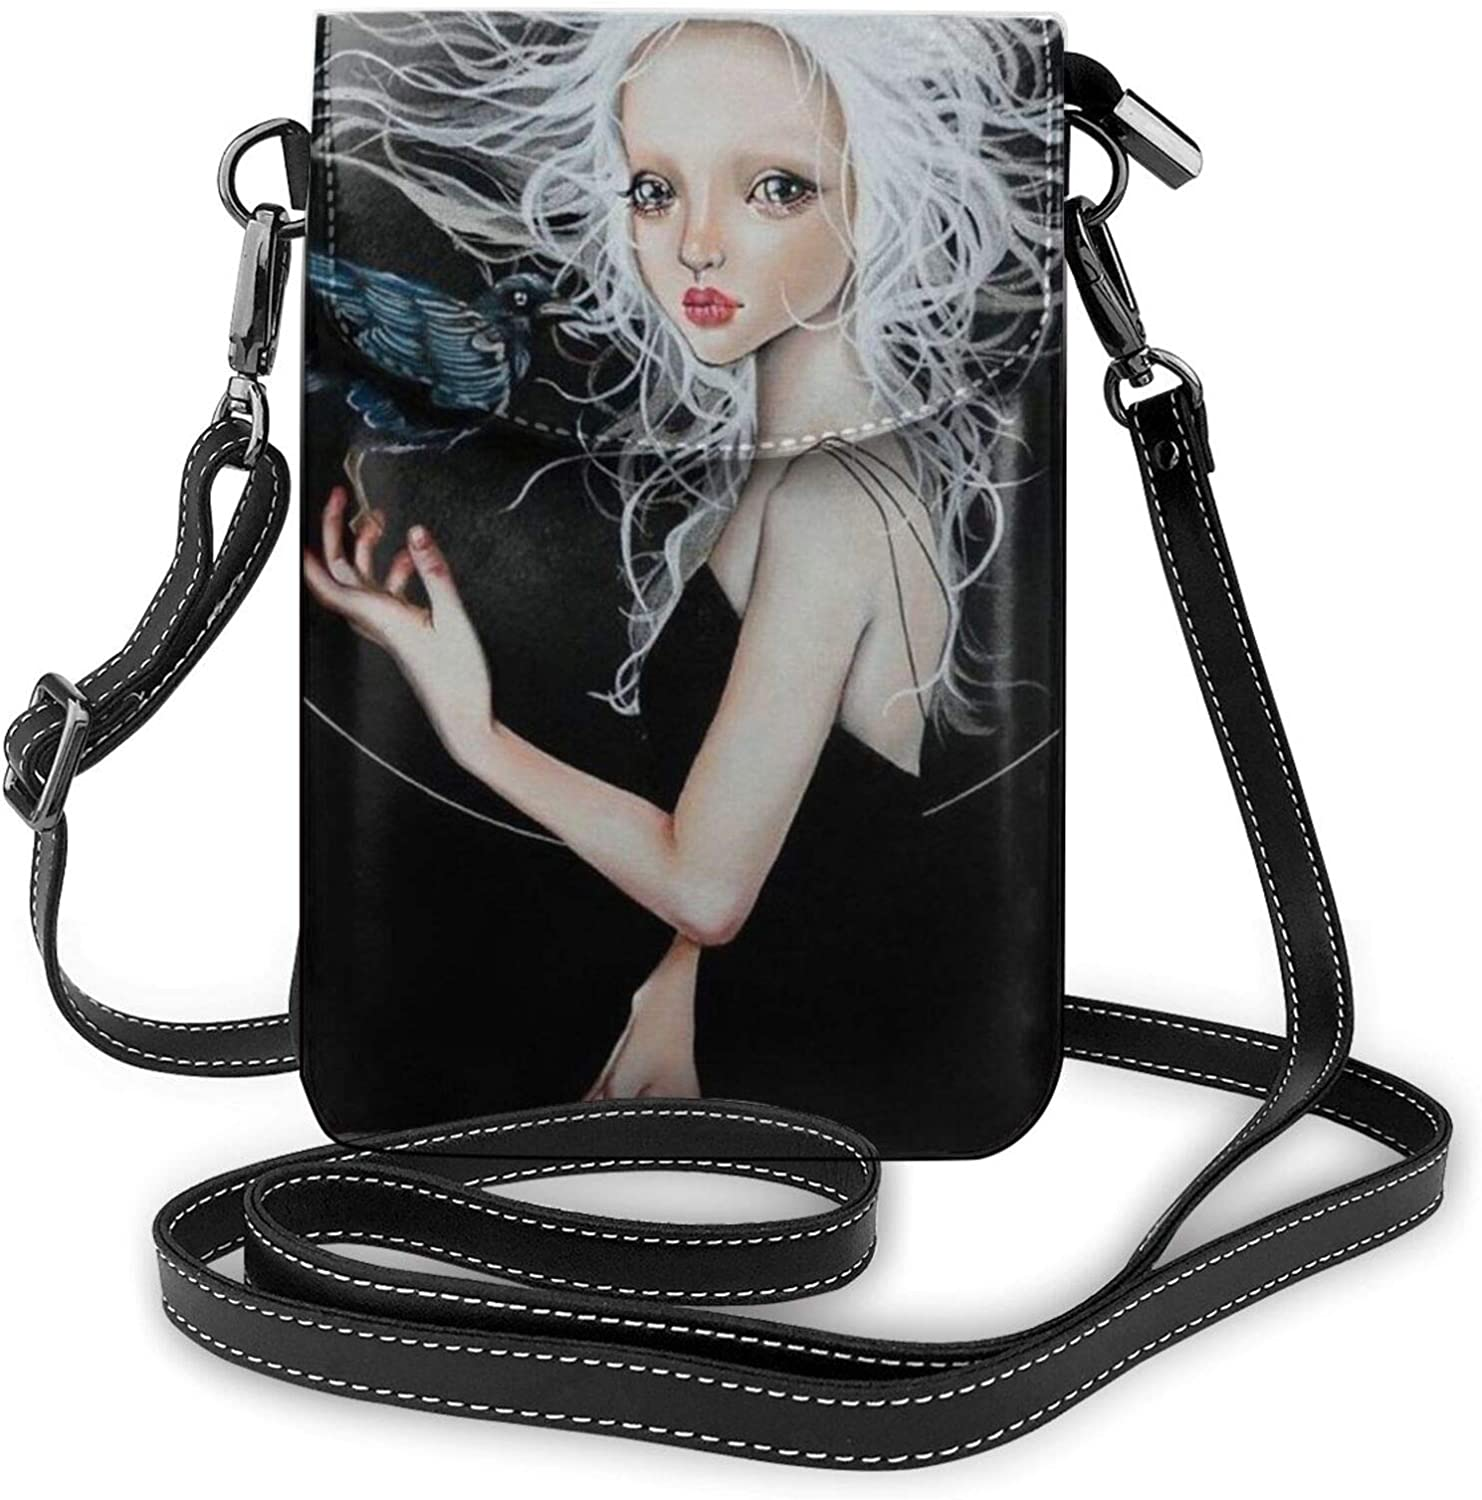 SWEET TANG Women Girls Purse Cell Phone Shoulder Bag Smooth Zipper Small Crossbody Phone Bag Suitable for Mobile Phones and Short Travel, Goth Gotik Gothic Women Girl Art Black